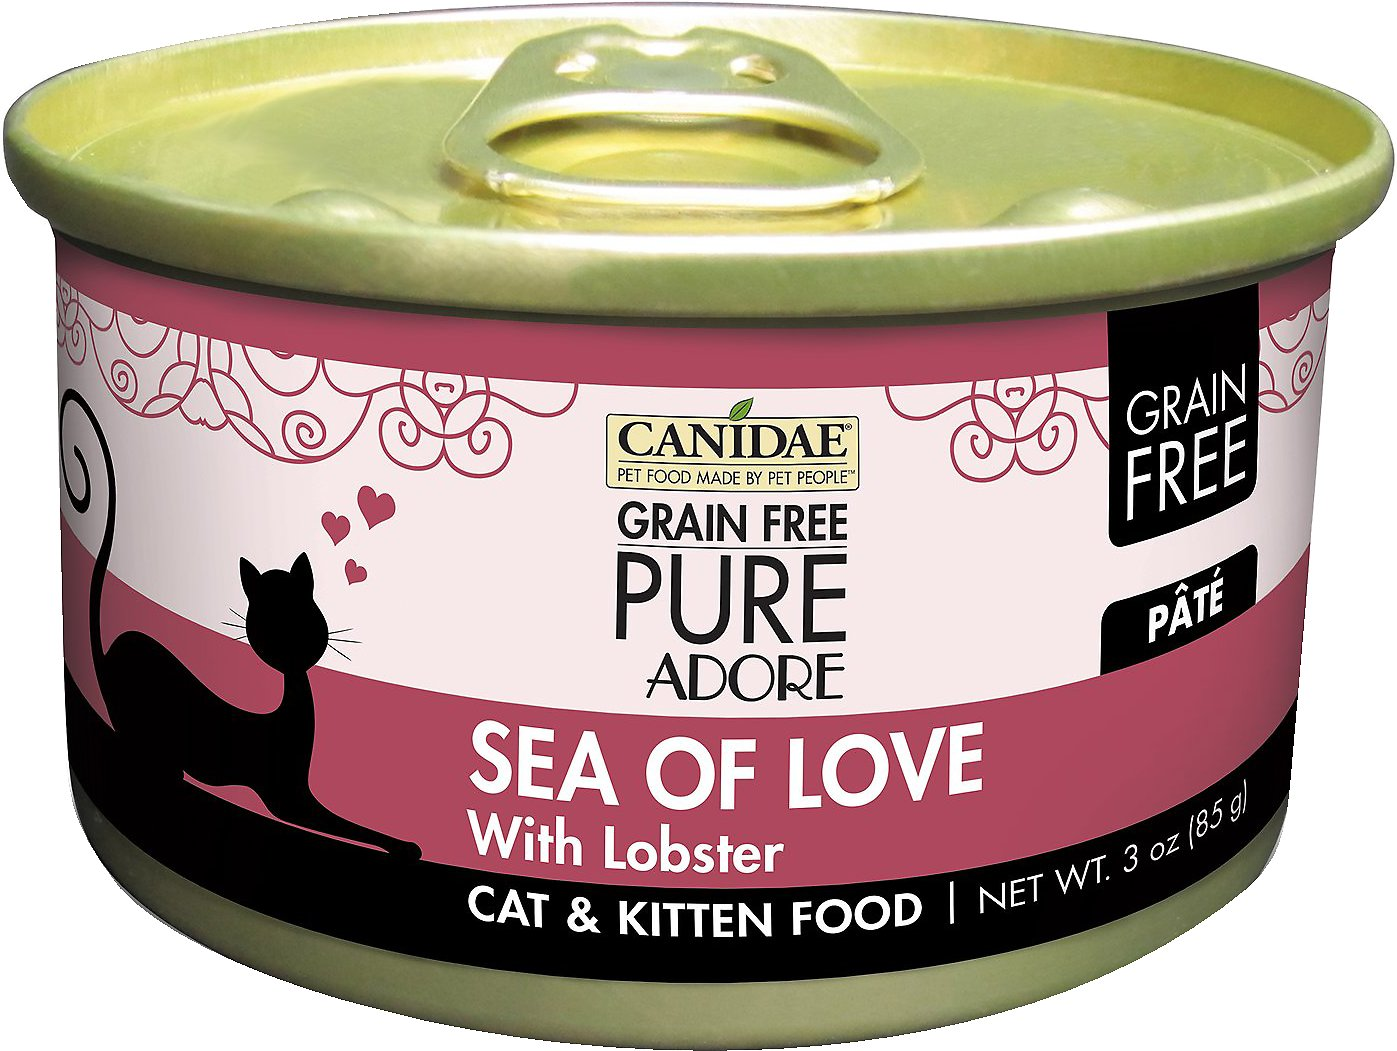 CANIDAE Grain-Free PURE Adore Sea of Love with Lobster Canned Cat Food, 3-oz